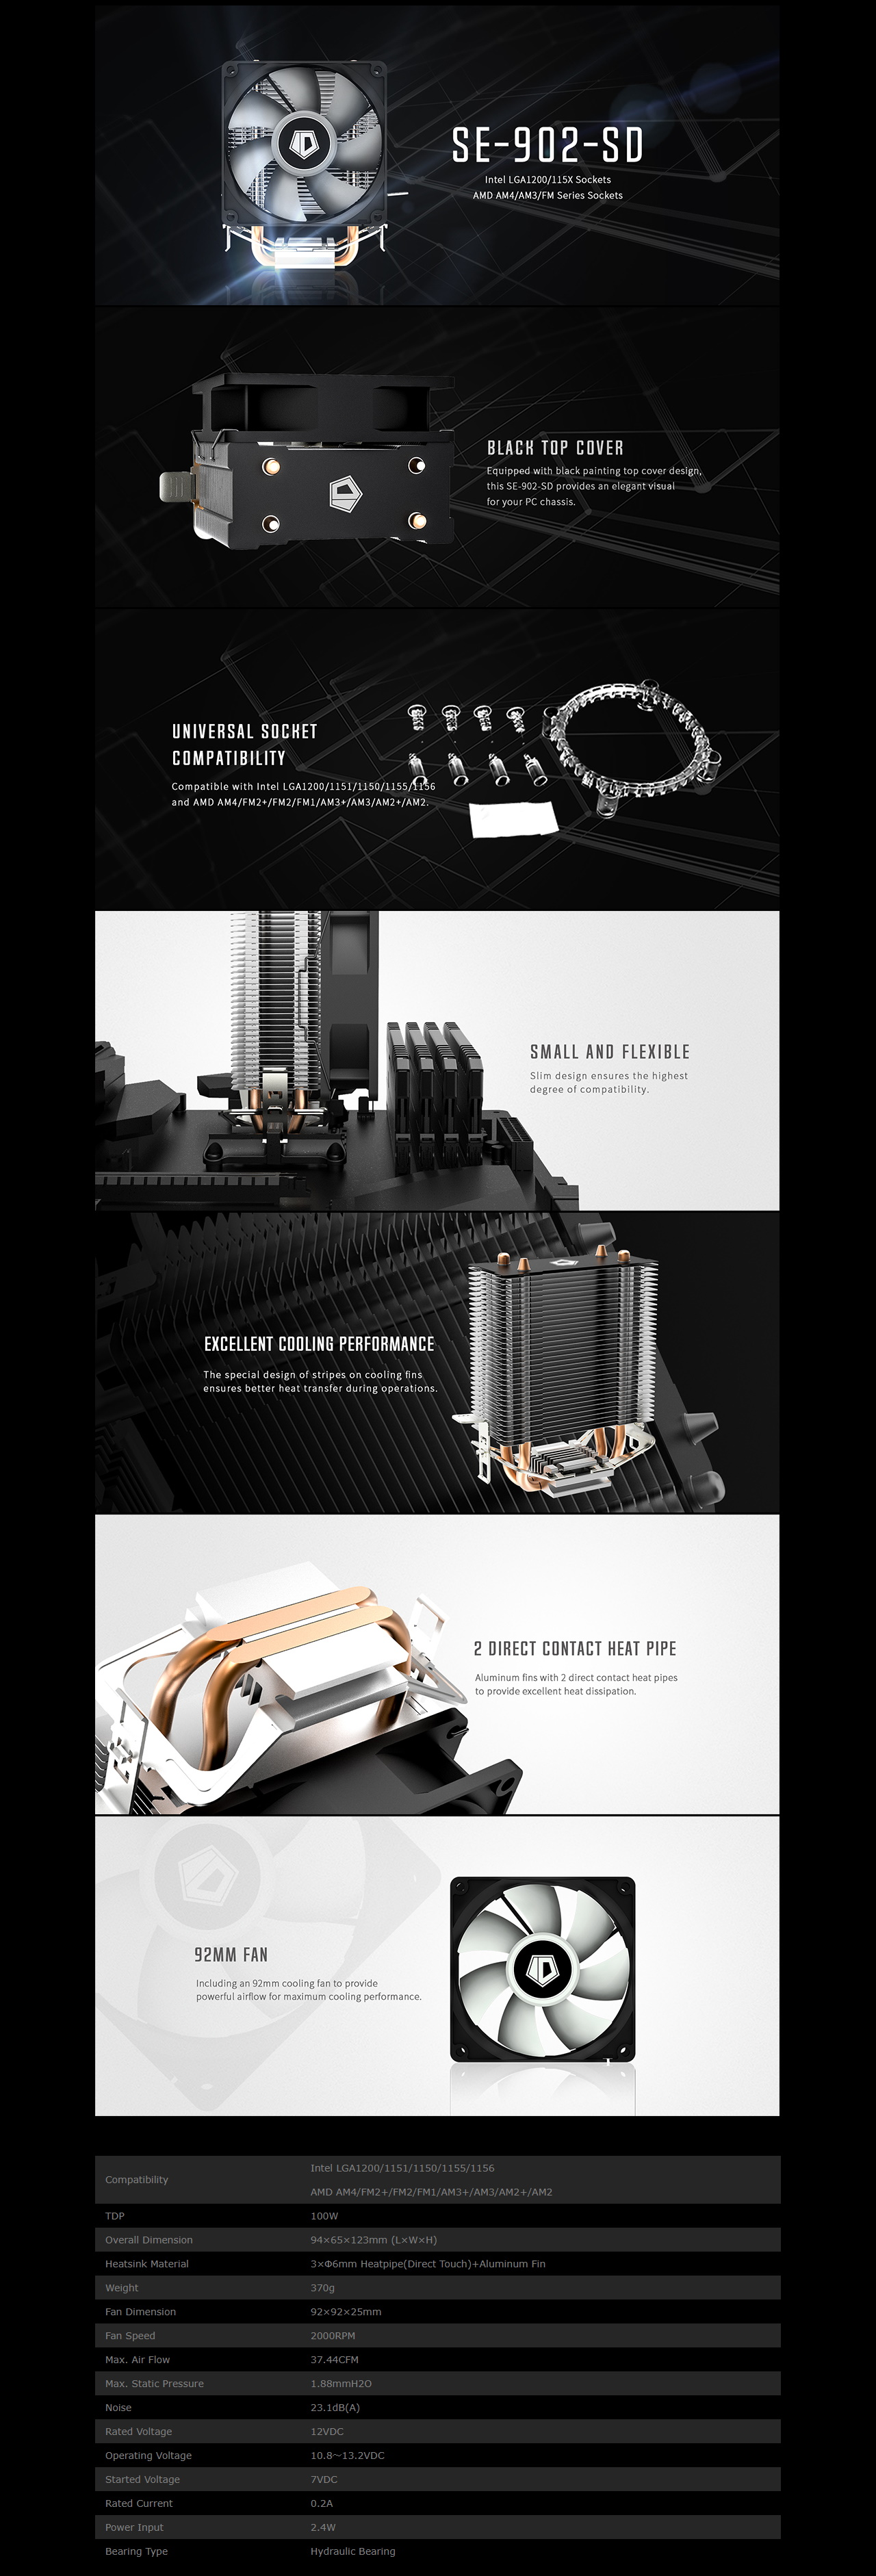 A large marketing image providing additional information about the product ID-COOLING Sweden Series SE-902SD CPU Cooler - Additional alt info not provided